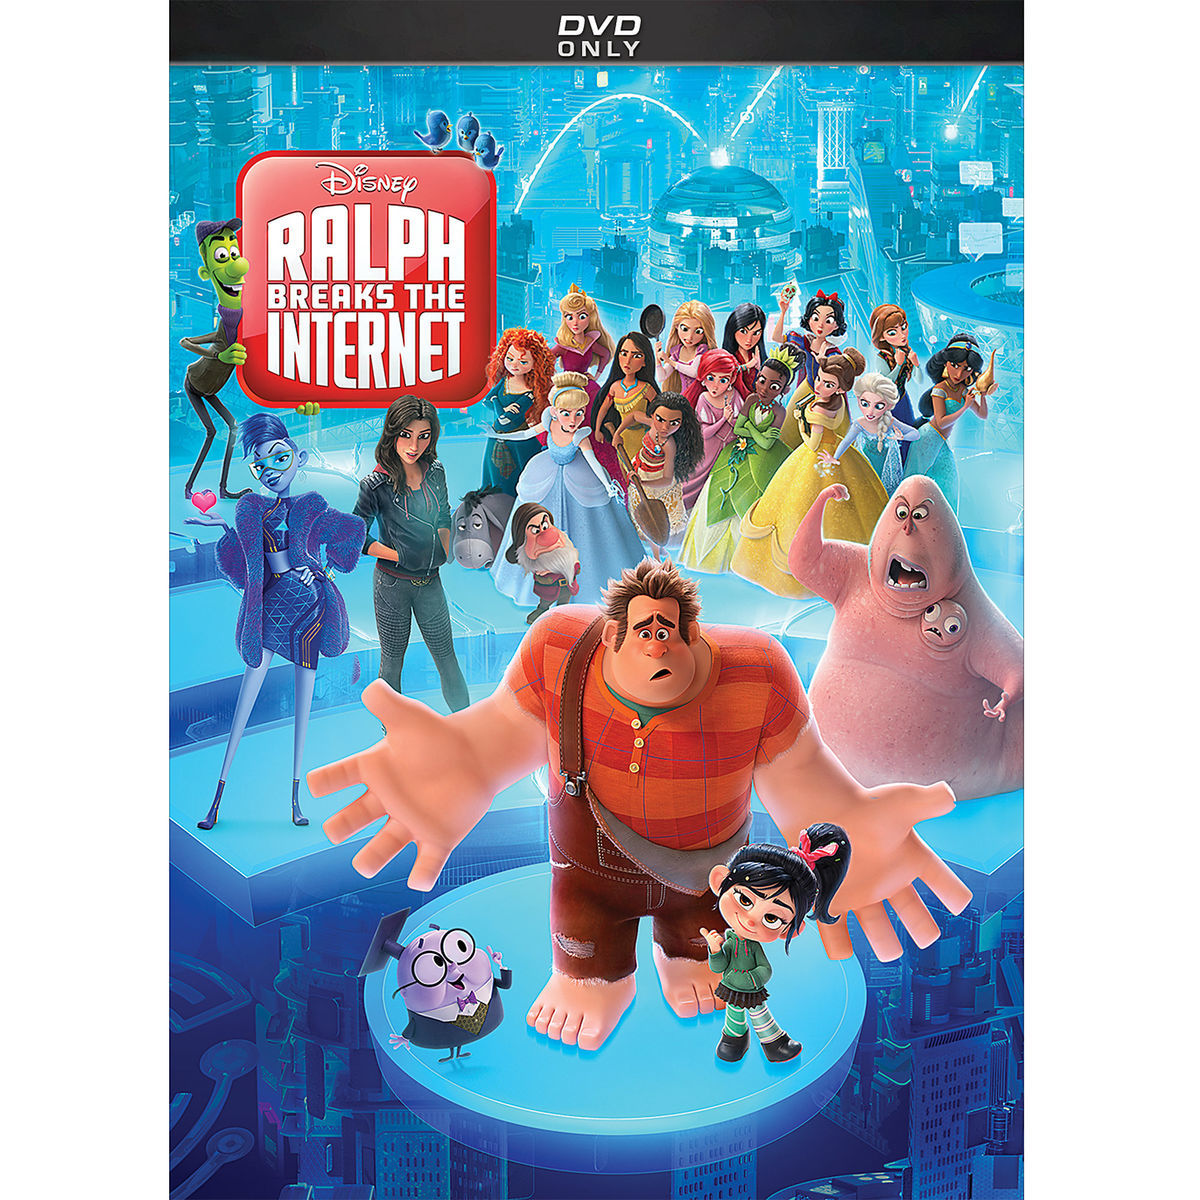 Car Covers Target >> Ralph Breaks The Internet Out Now On DVD/Blu-Ray/4K | | DisKingdom.com | Disney | Marvel | Star ...